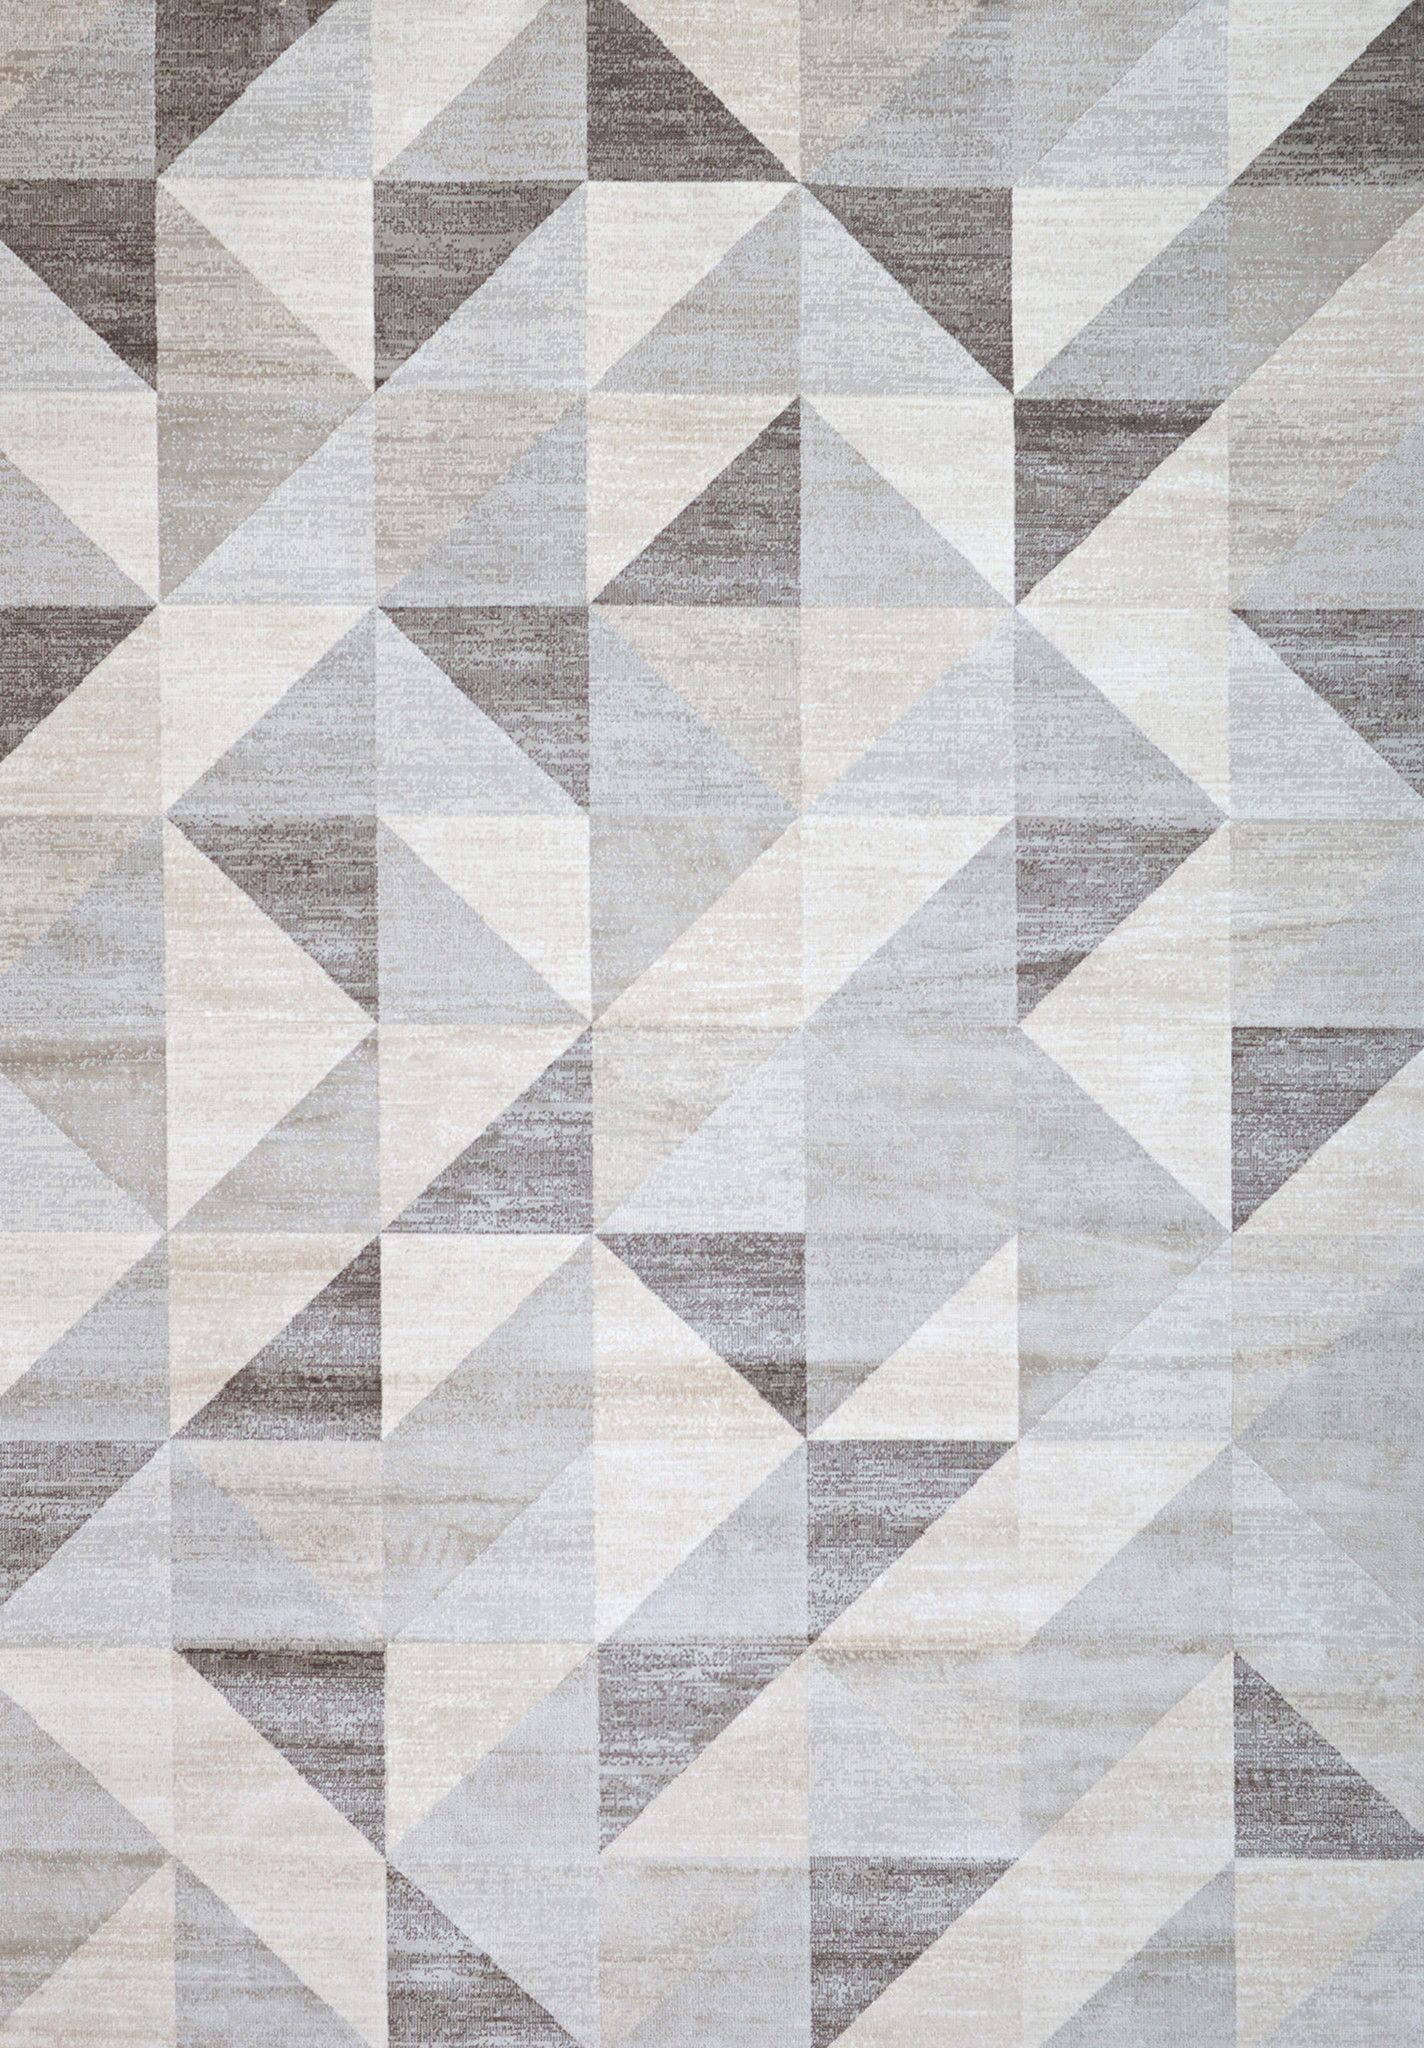 silver gray and white modern geometric triangle pattern rug